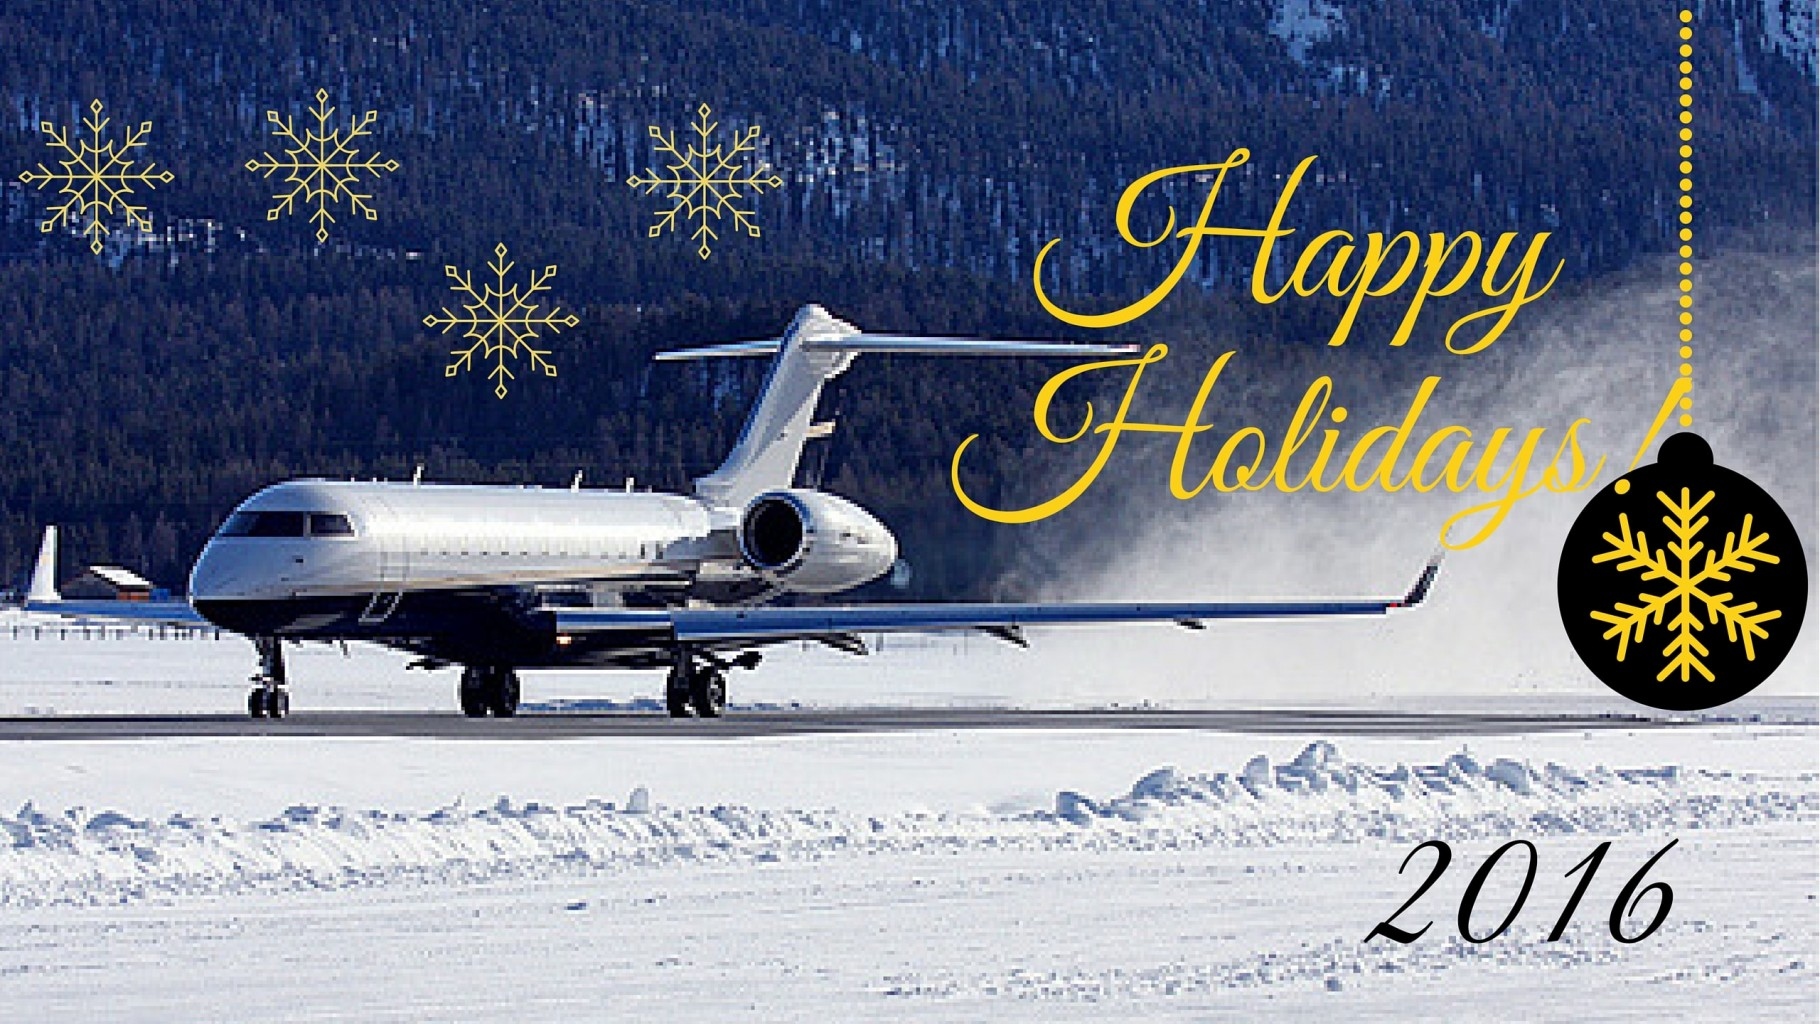 Seasons Greetings From Abi Business Jet Charter Rent A